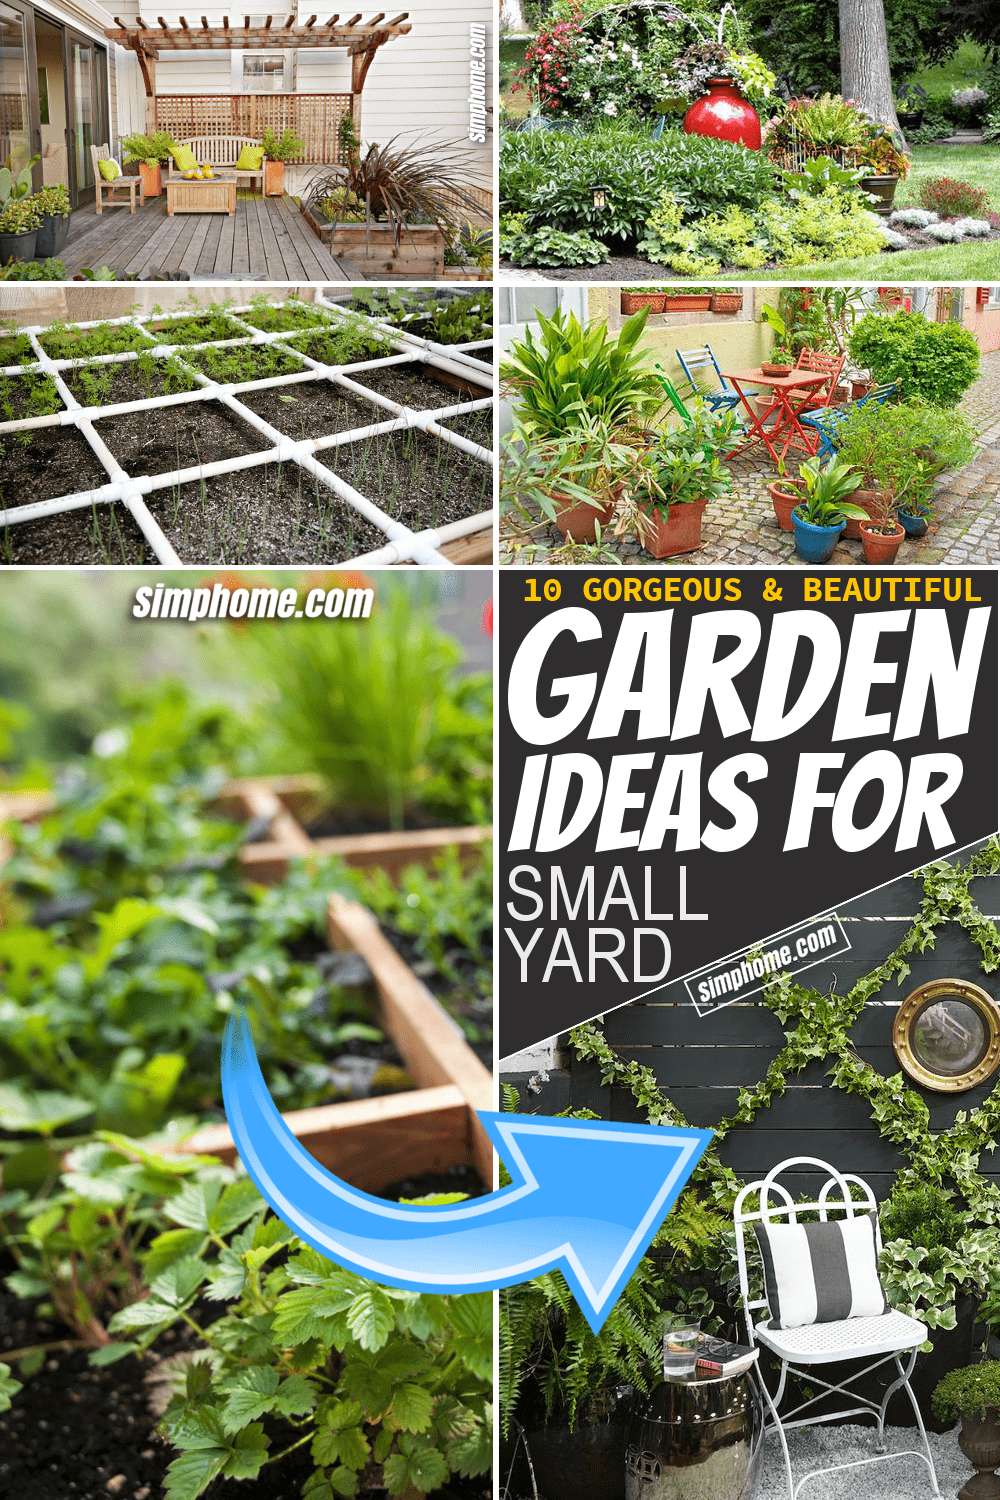 Simphome.com 10 garden ideas for small yard Pinterest featured image